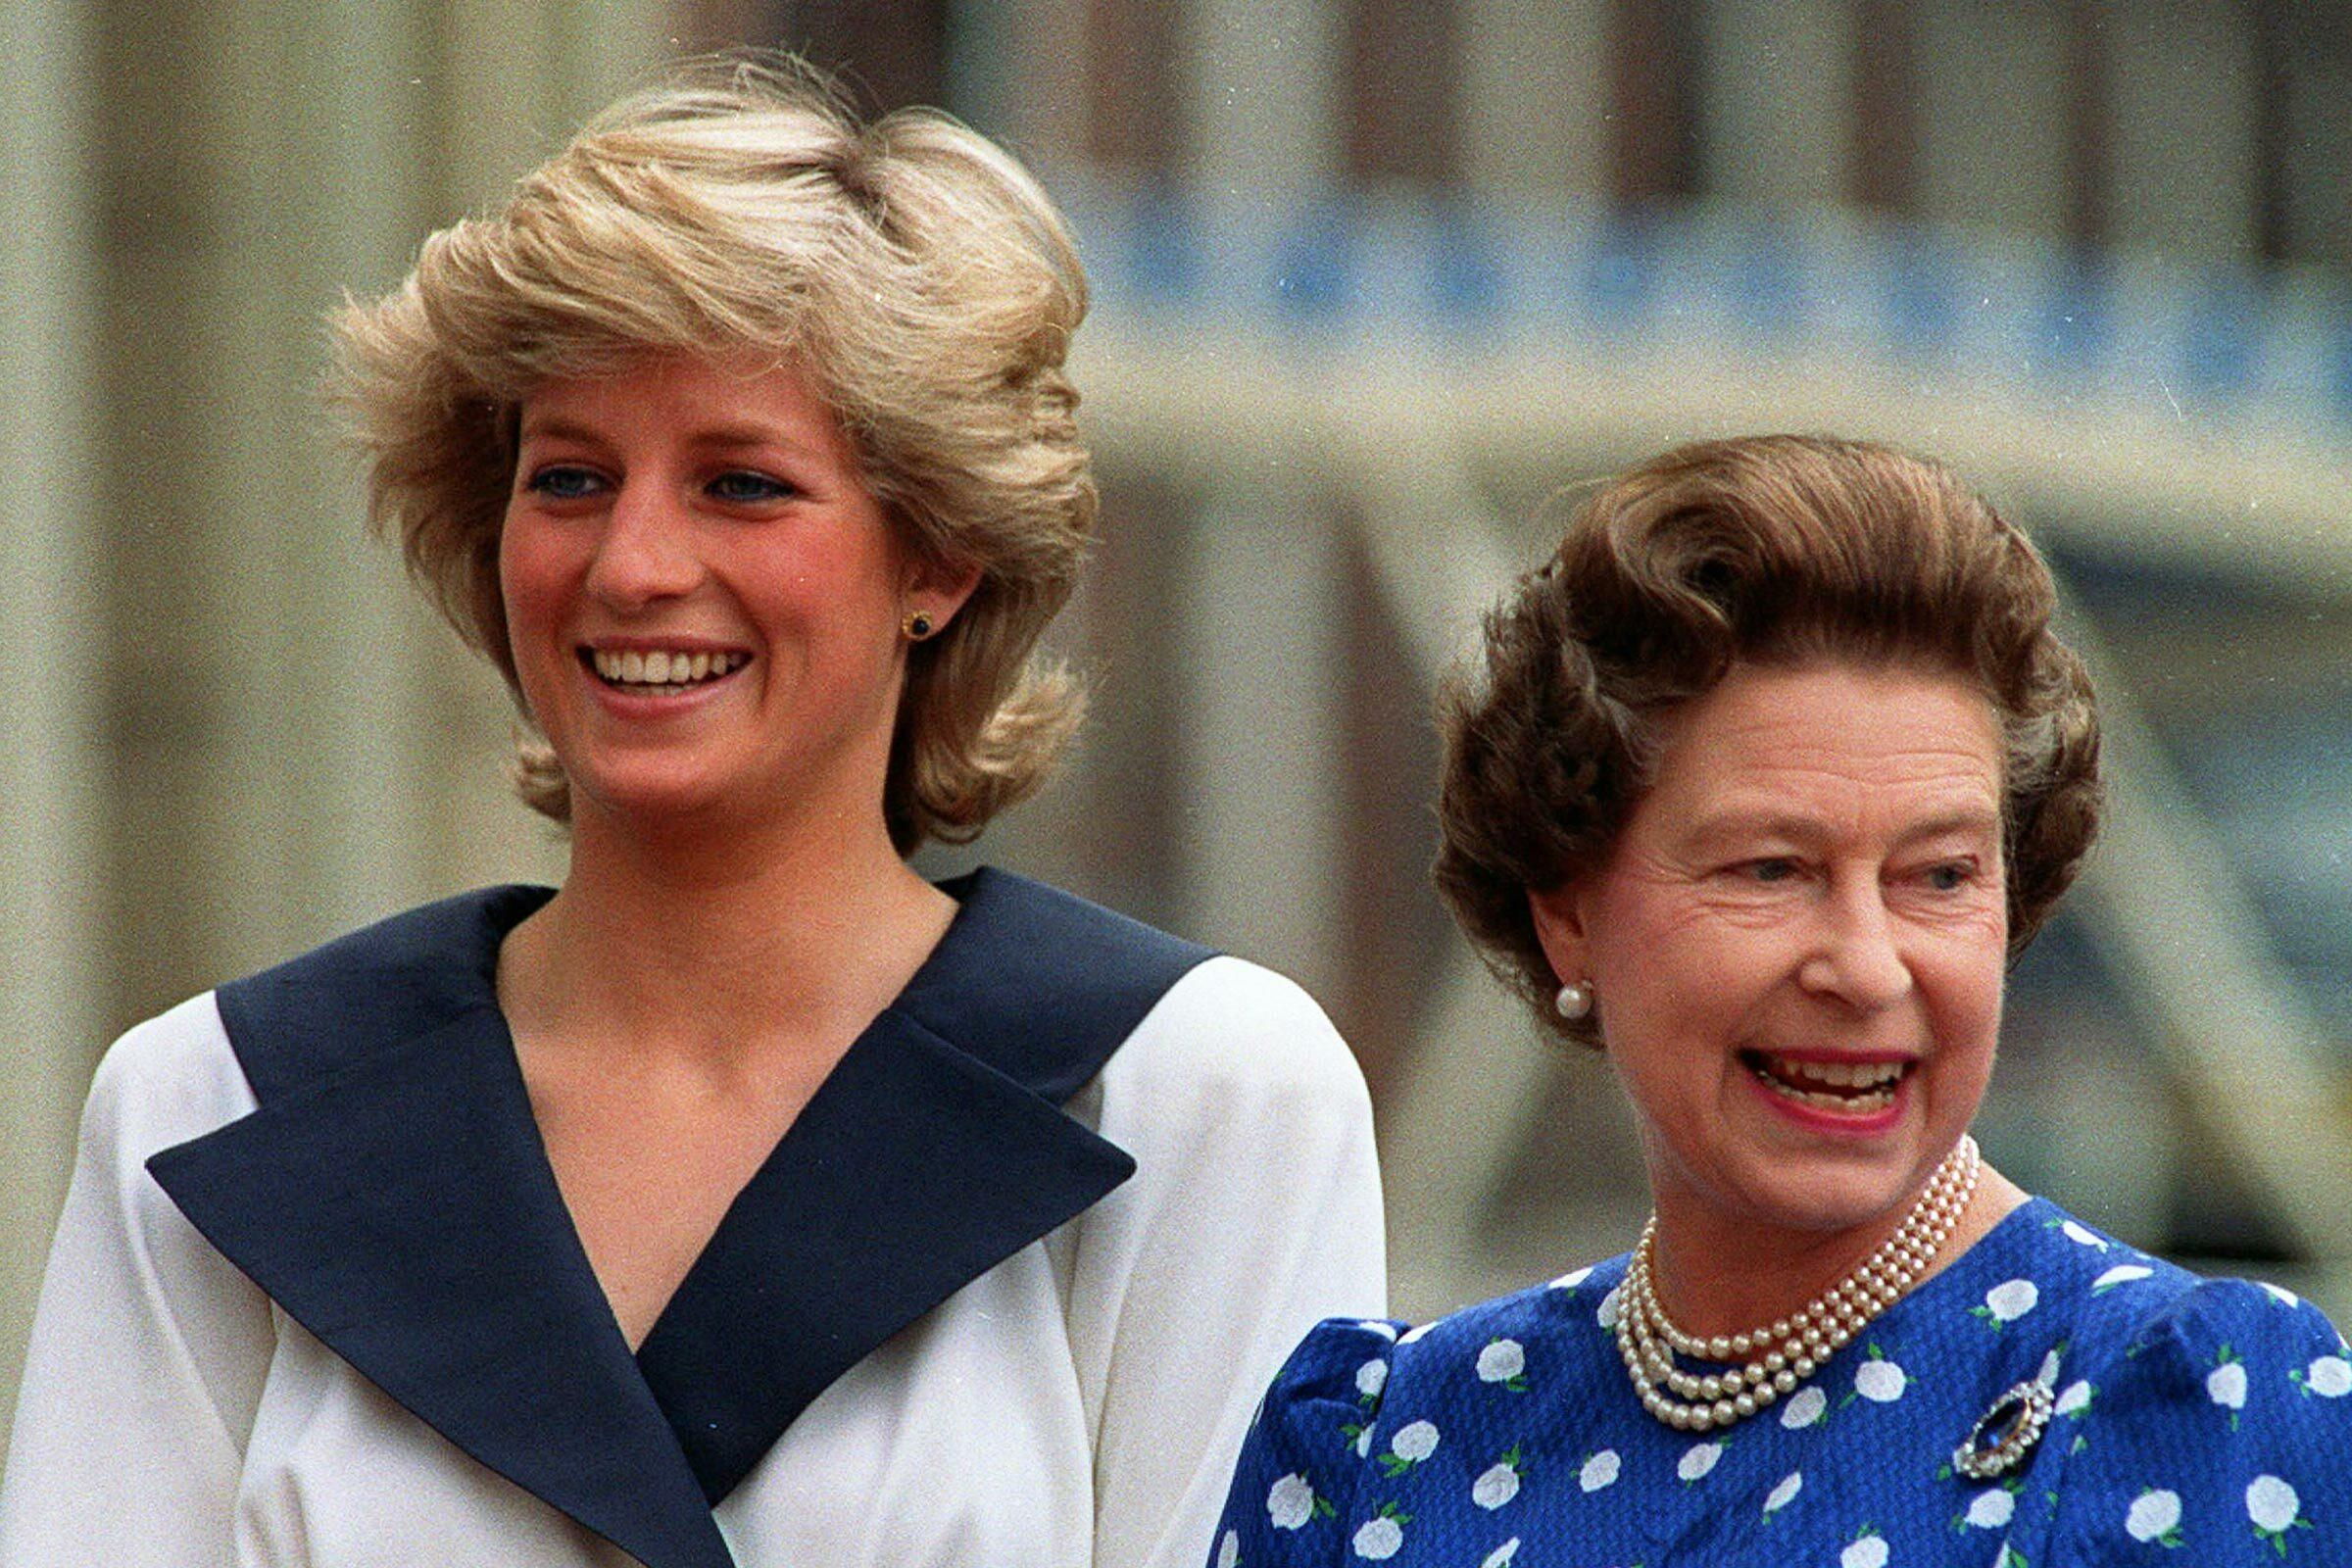 Diana and the Queen snapped in good spirits.